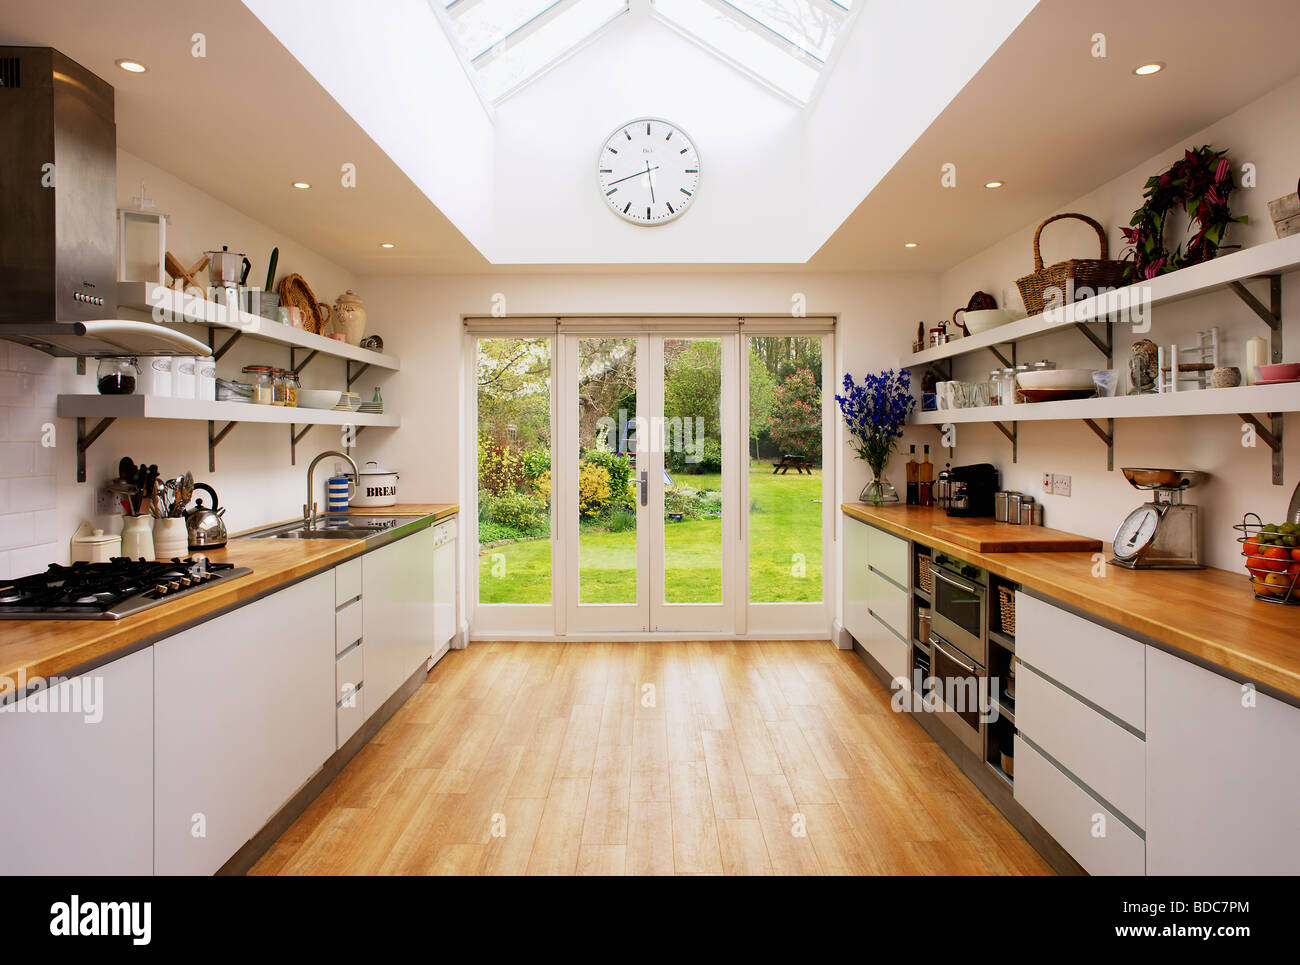 Wooden flooring and glass patio doors in modern kitchen extension wooden flooring and glass patio doors in modern kitchen extension with fitted white units planetlyrics Choice Image